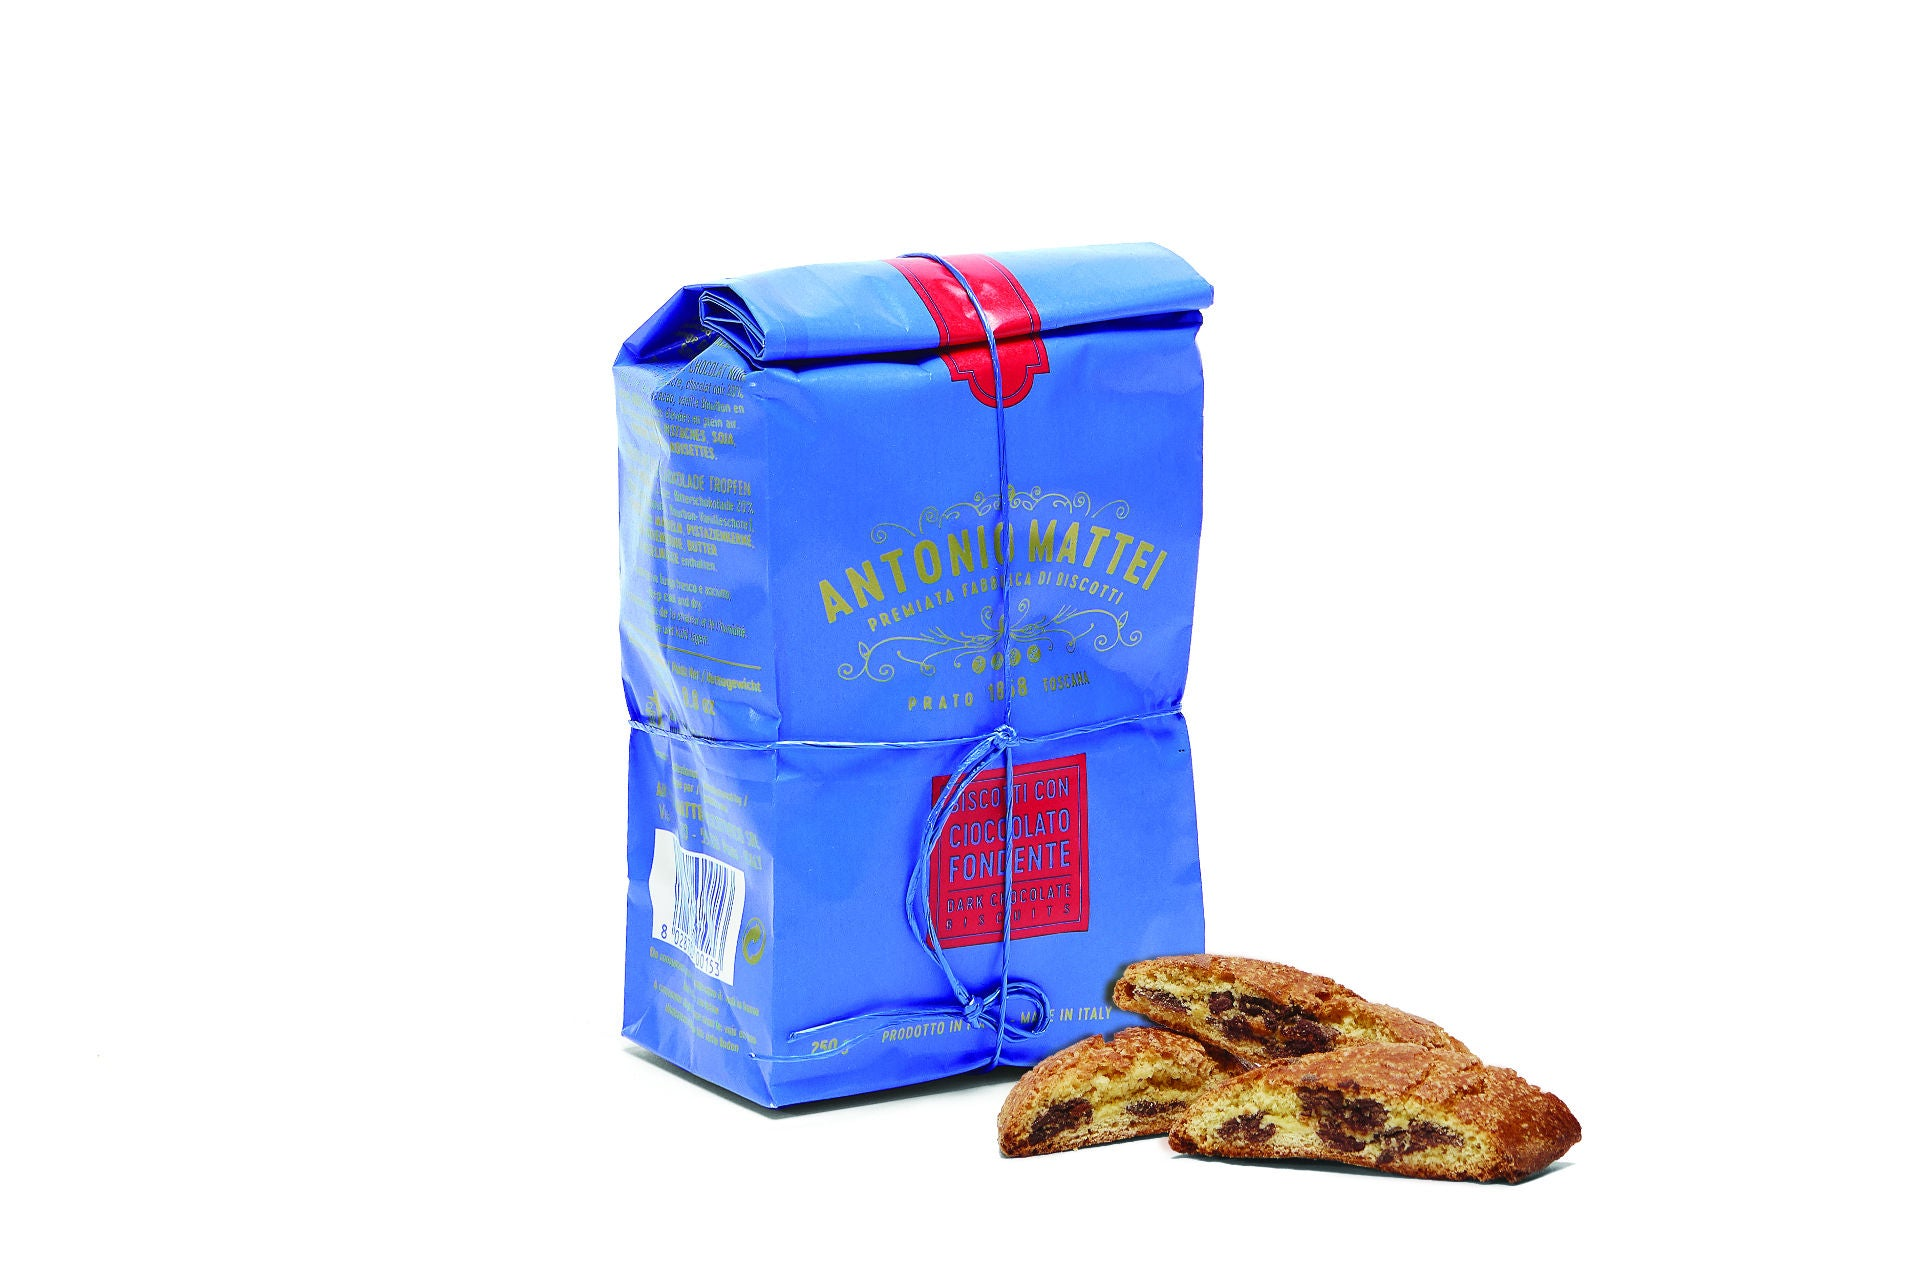 Antonio Mattei Chocolate Cantucci Biscuit Made in Prato, Tuscany - Shop at the Red Beetle